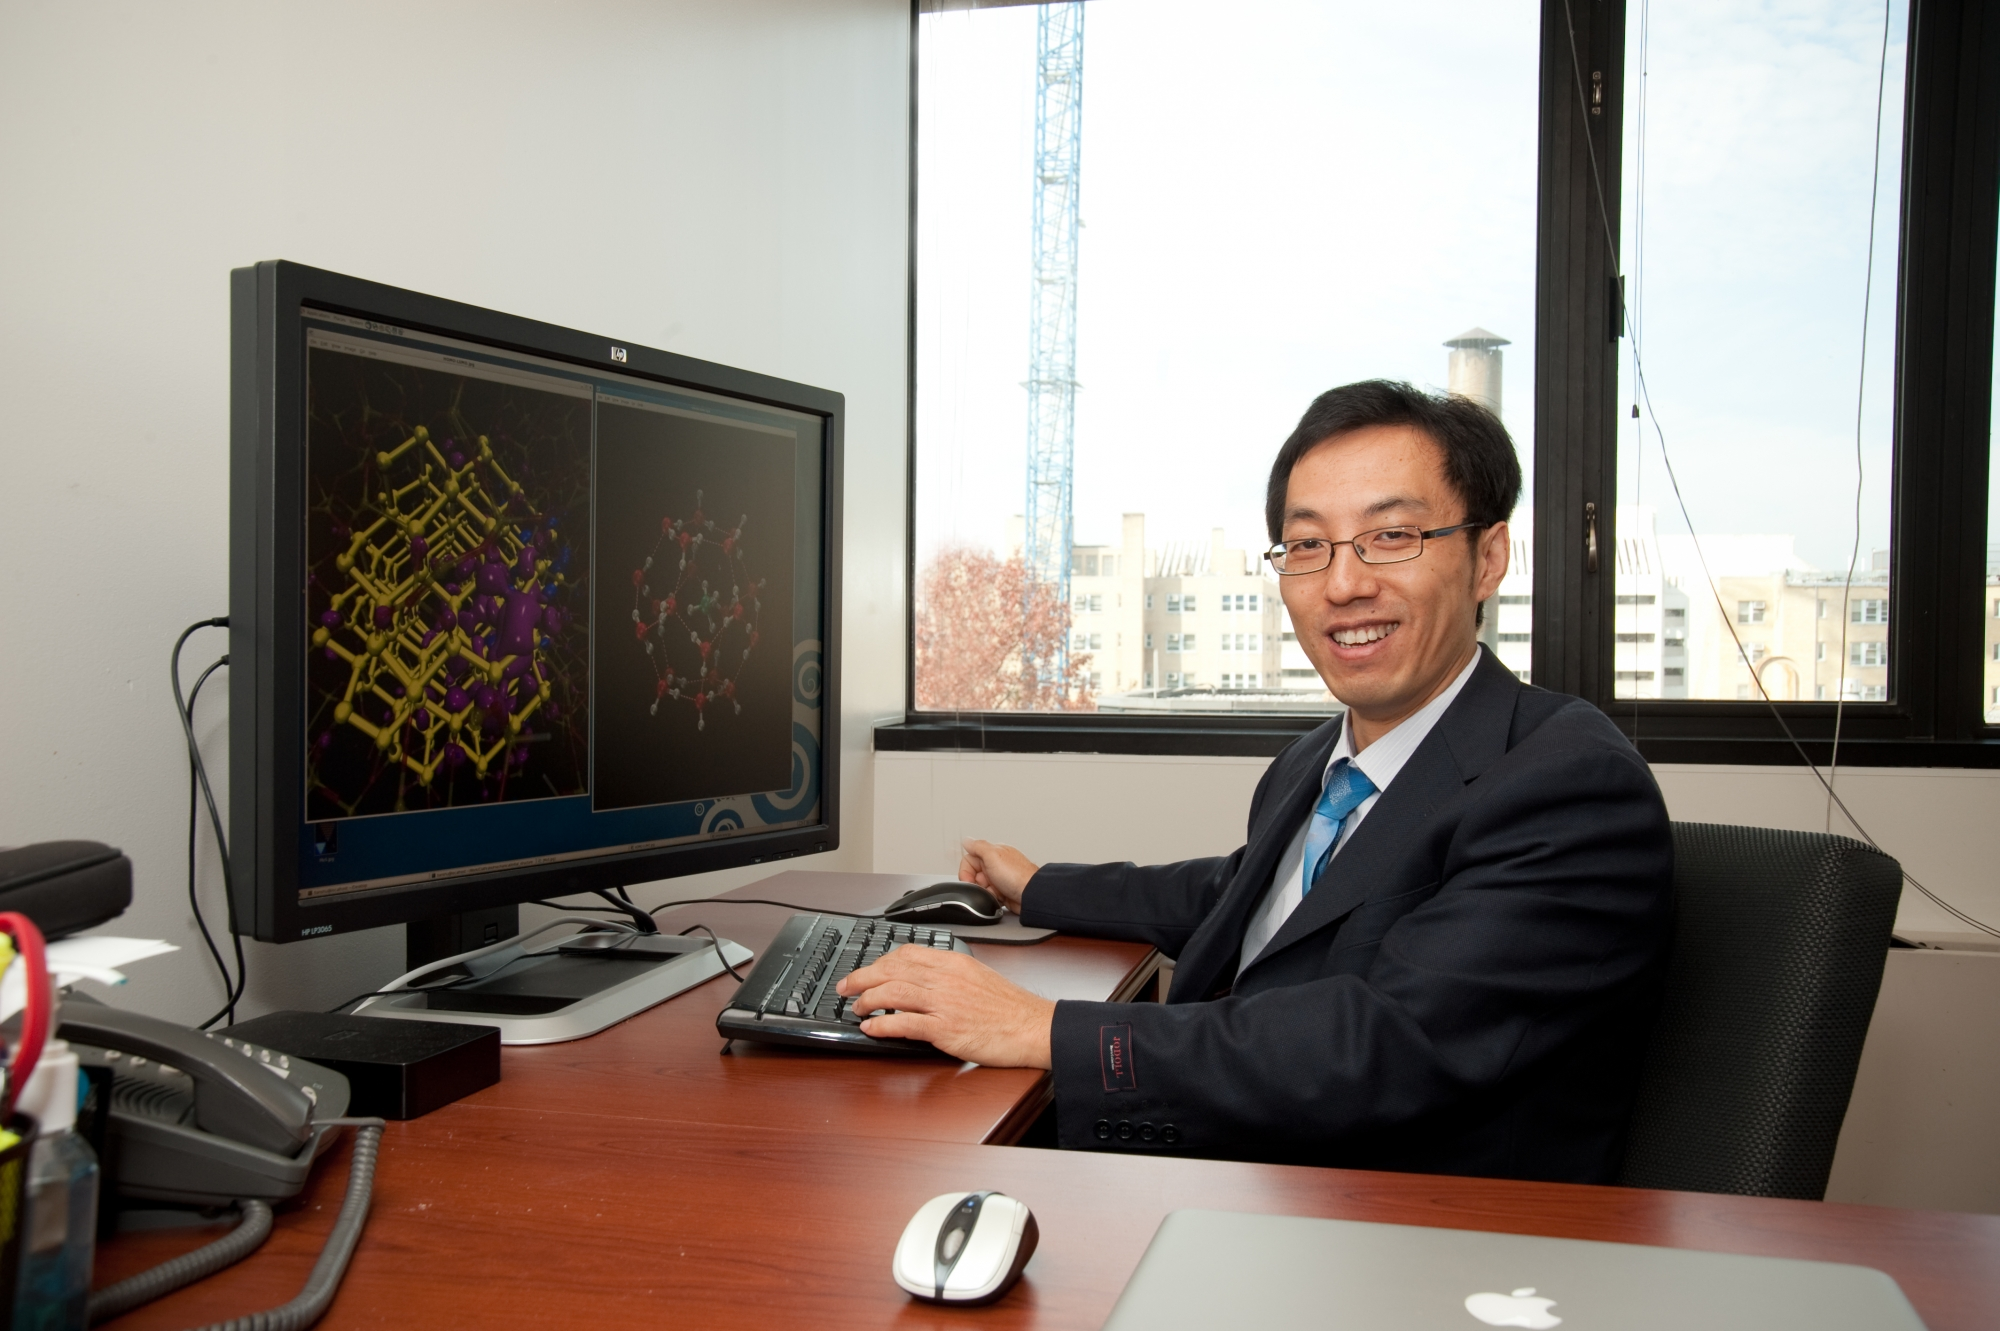 Dr. Tianshu Li at his desk